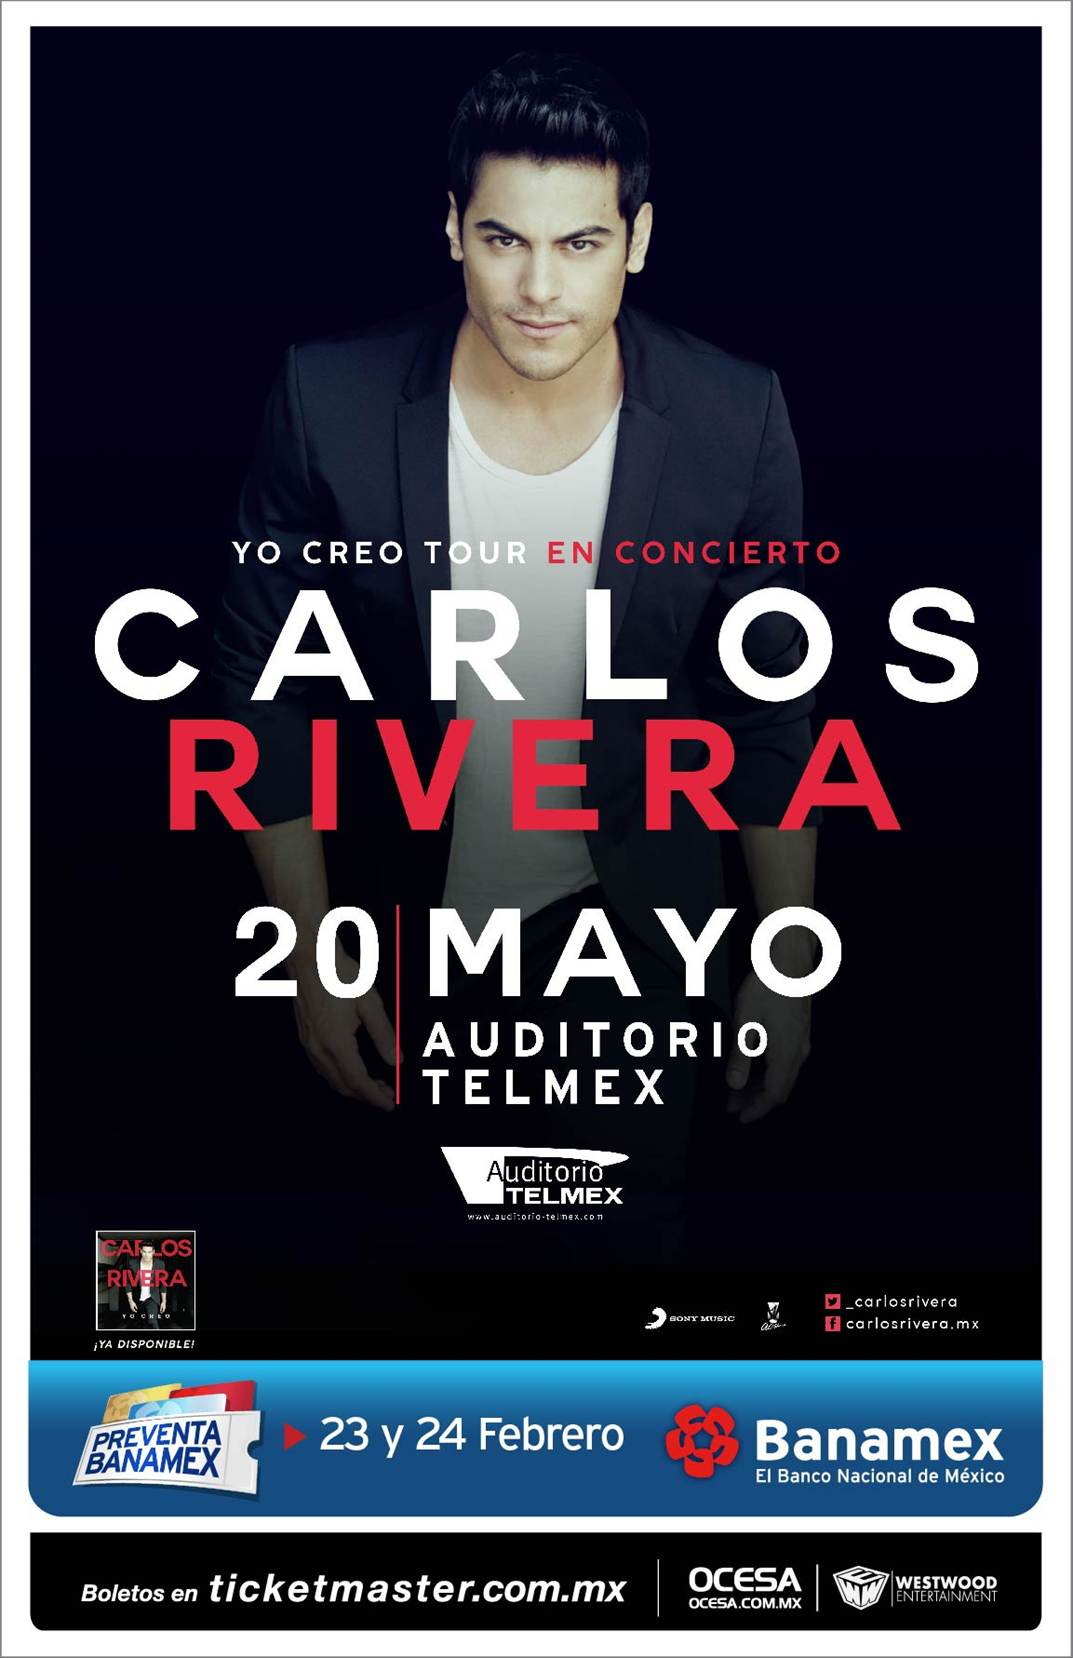 Carlos Rivera Auditorio Telmex